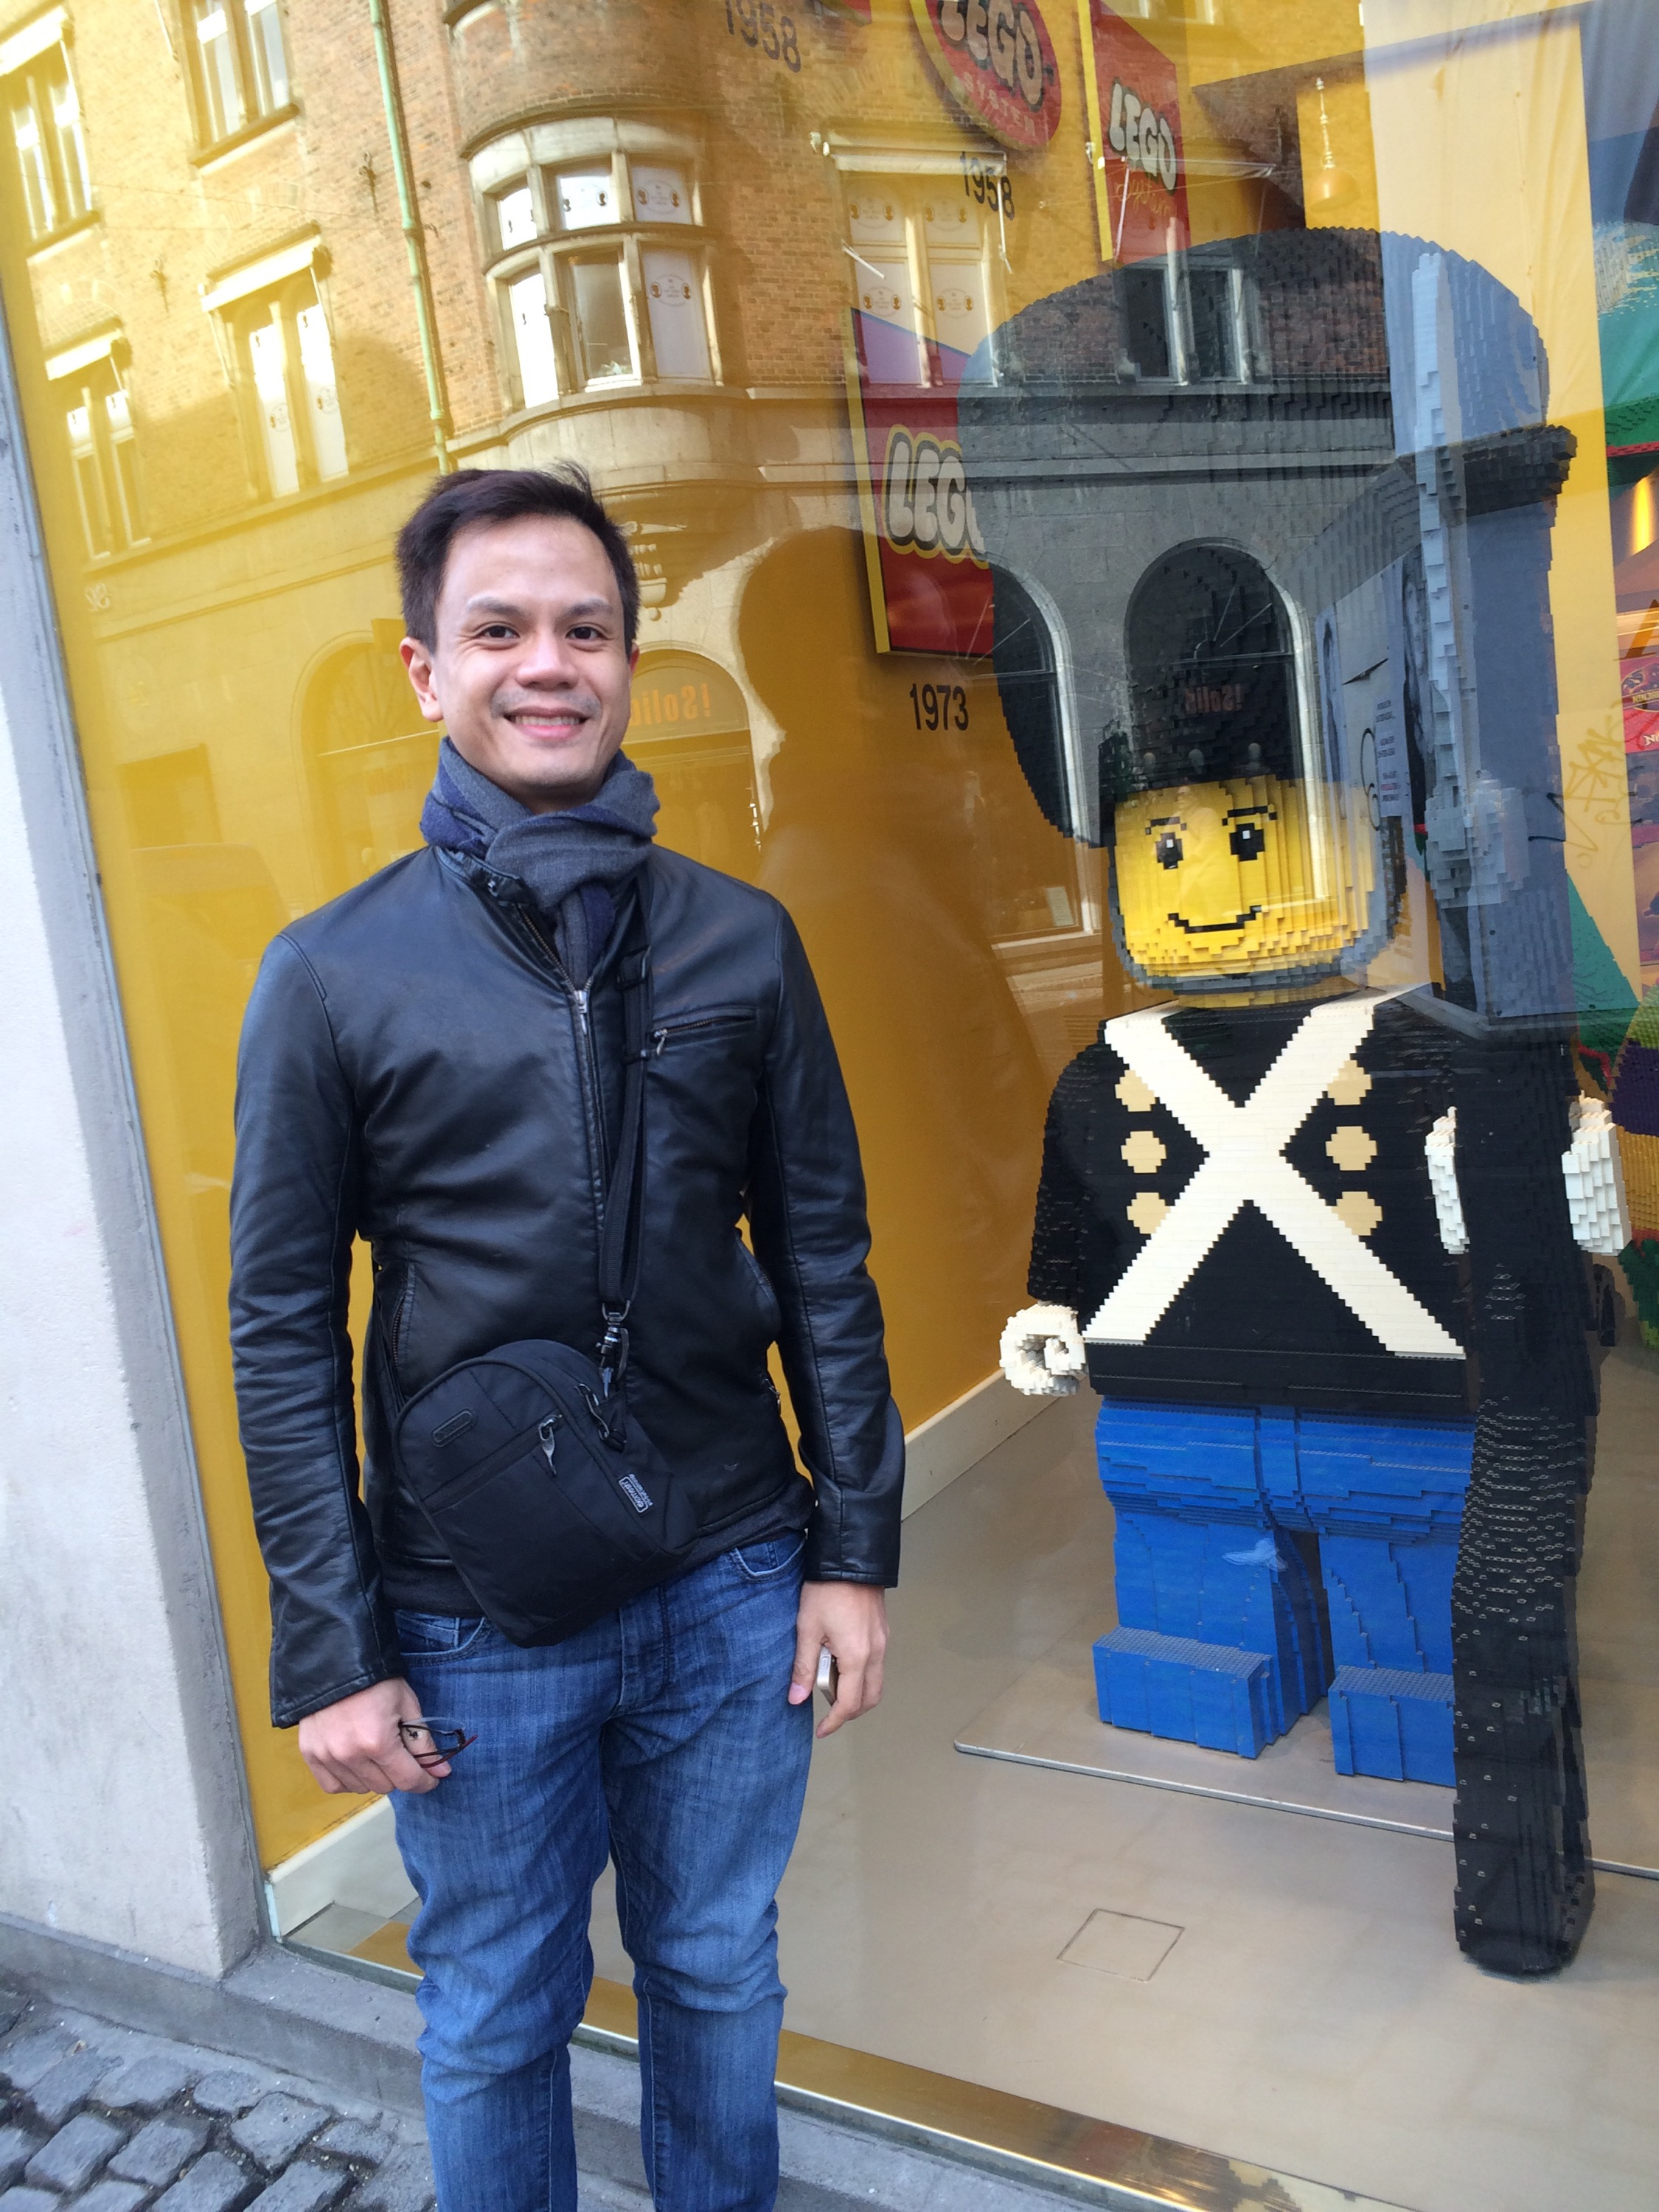 Drew at the Lego Store